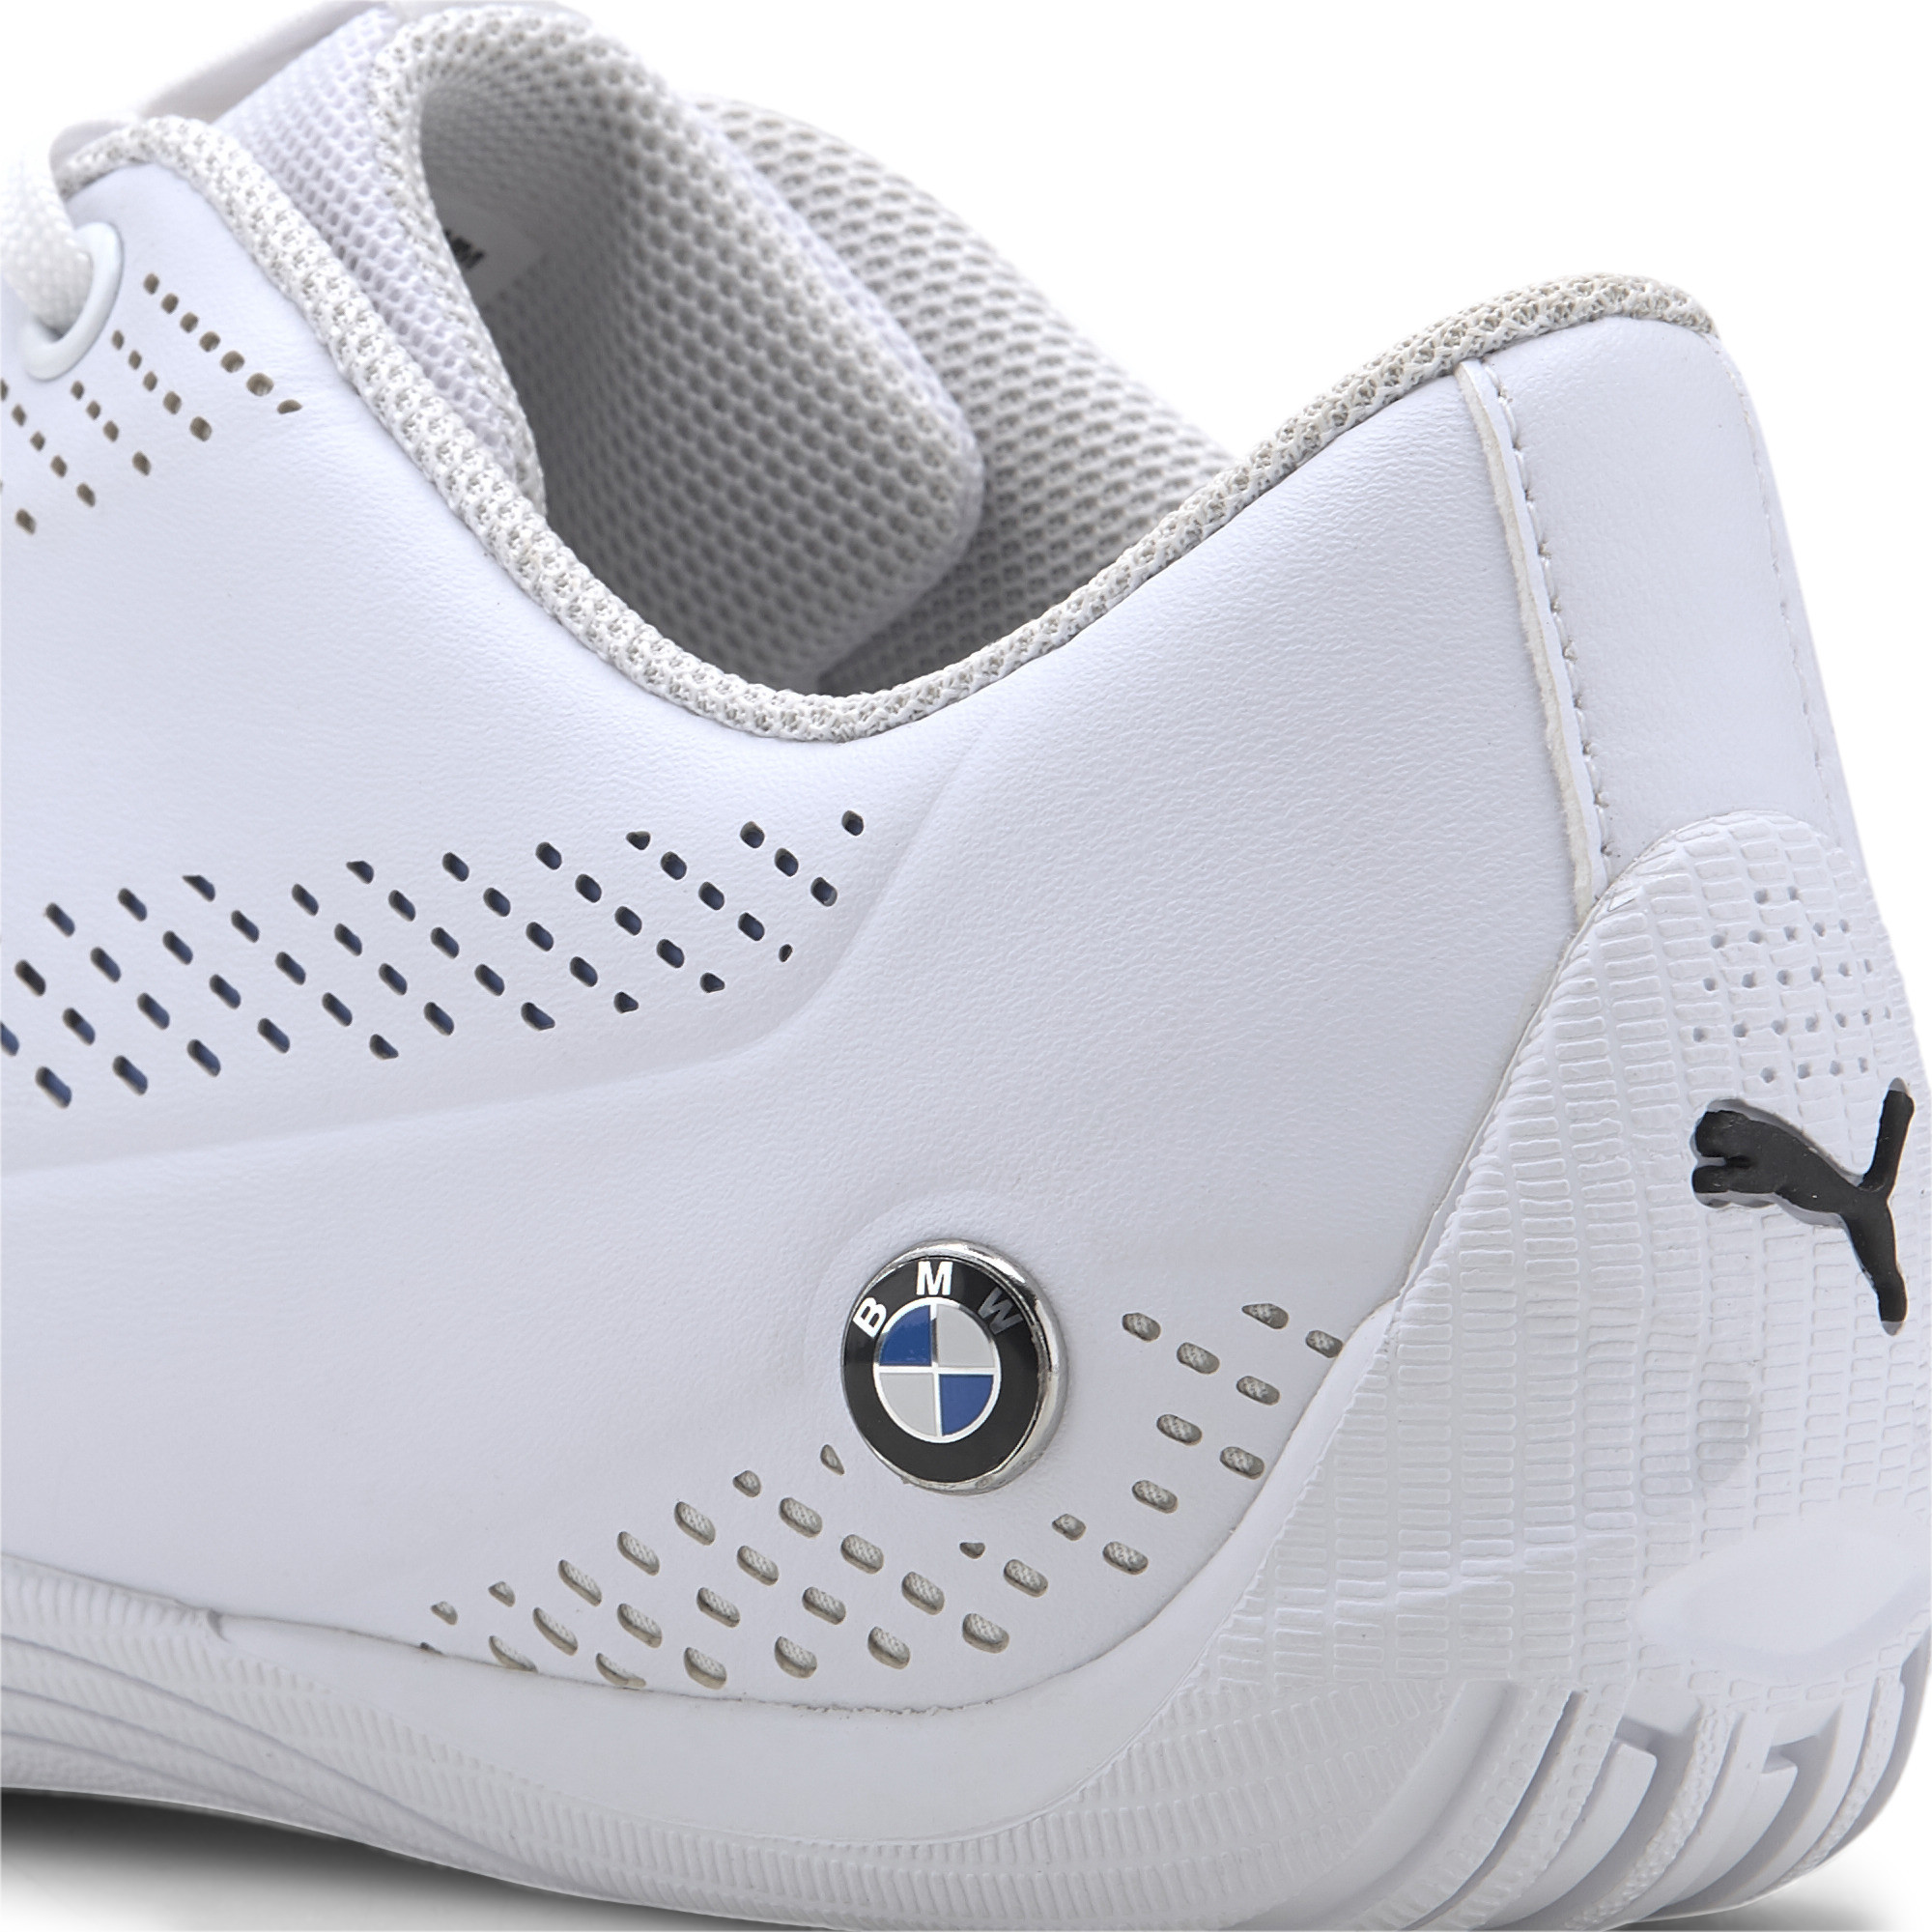 PUMA-Men-039-s-BMW-M-Motorsport-Drift-Cat-5-Ultra-Motorsport-Shoes thumbnail 9